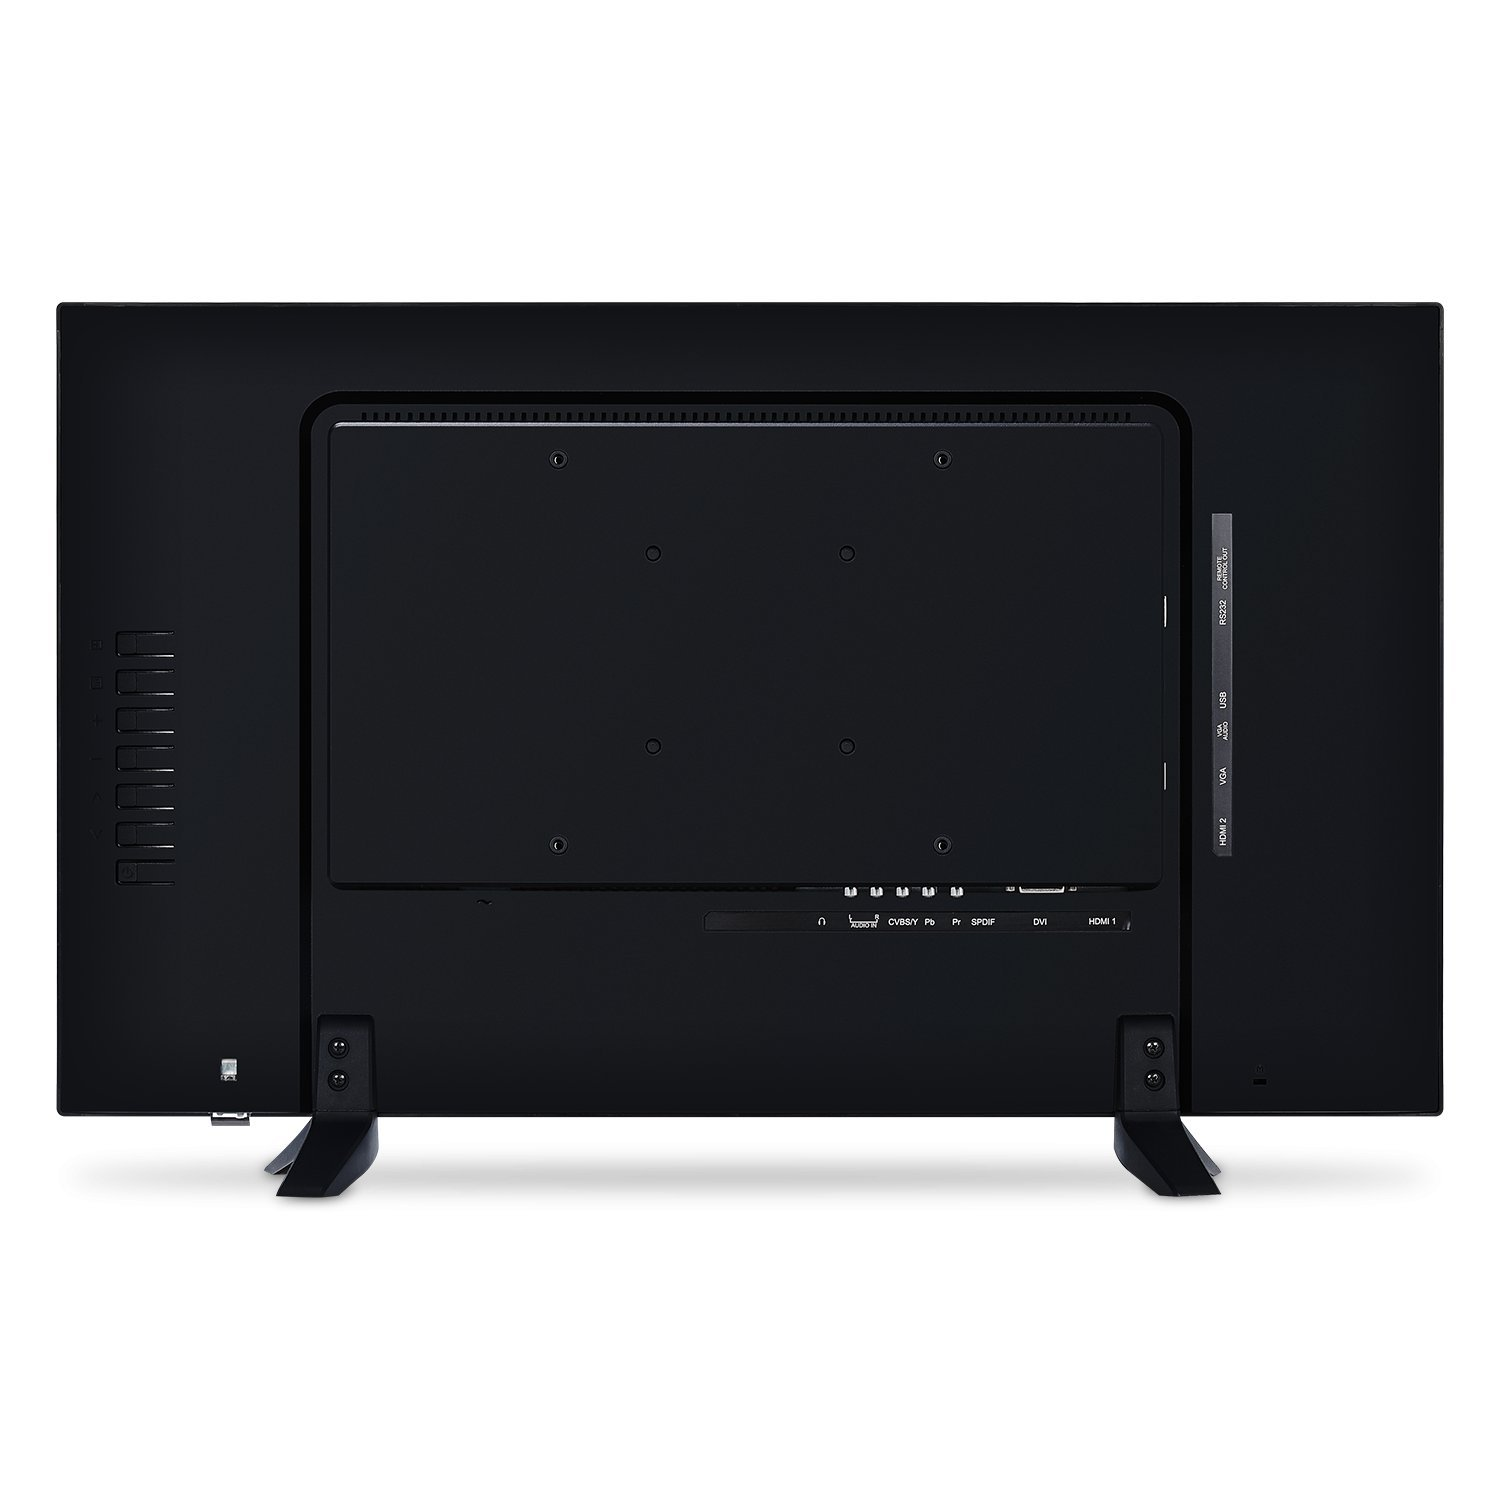 """ViewSonic CDE3204 32"""" 1080p 16/7 Operation Commercial Display with USB Media Player, HDMI, DVI, VGA"""